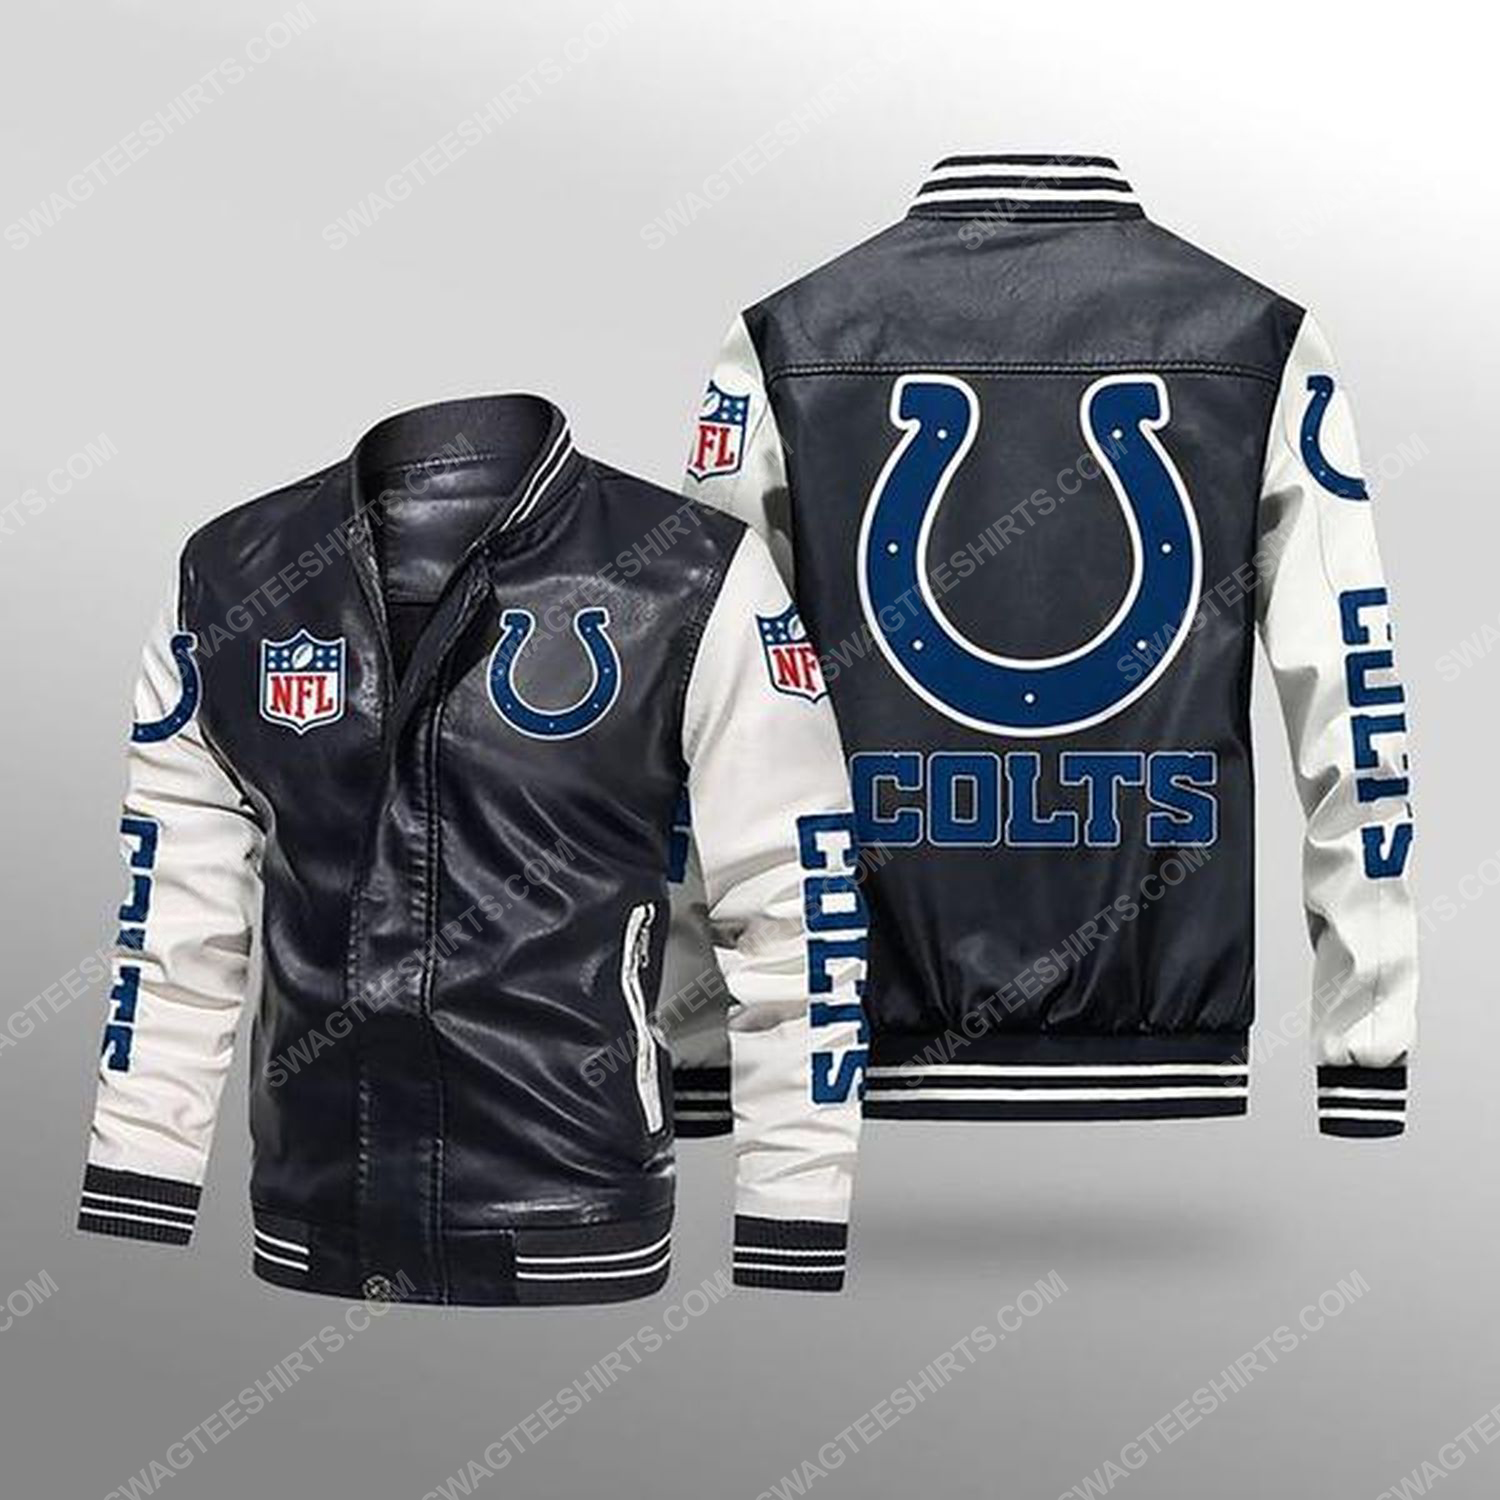 Indianapolis colts all over print leather bomber jacket - white